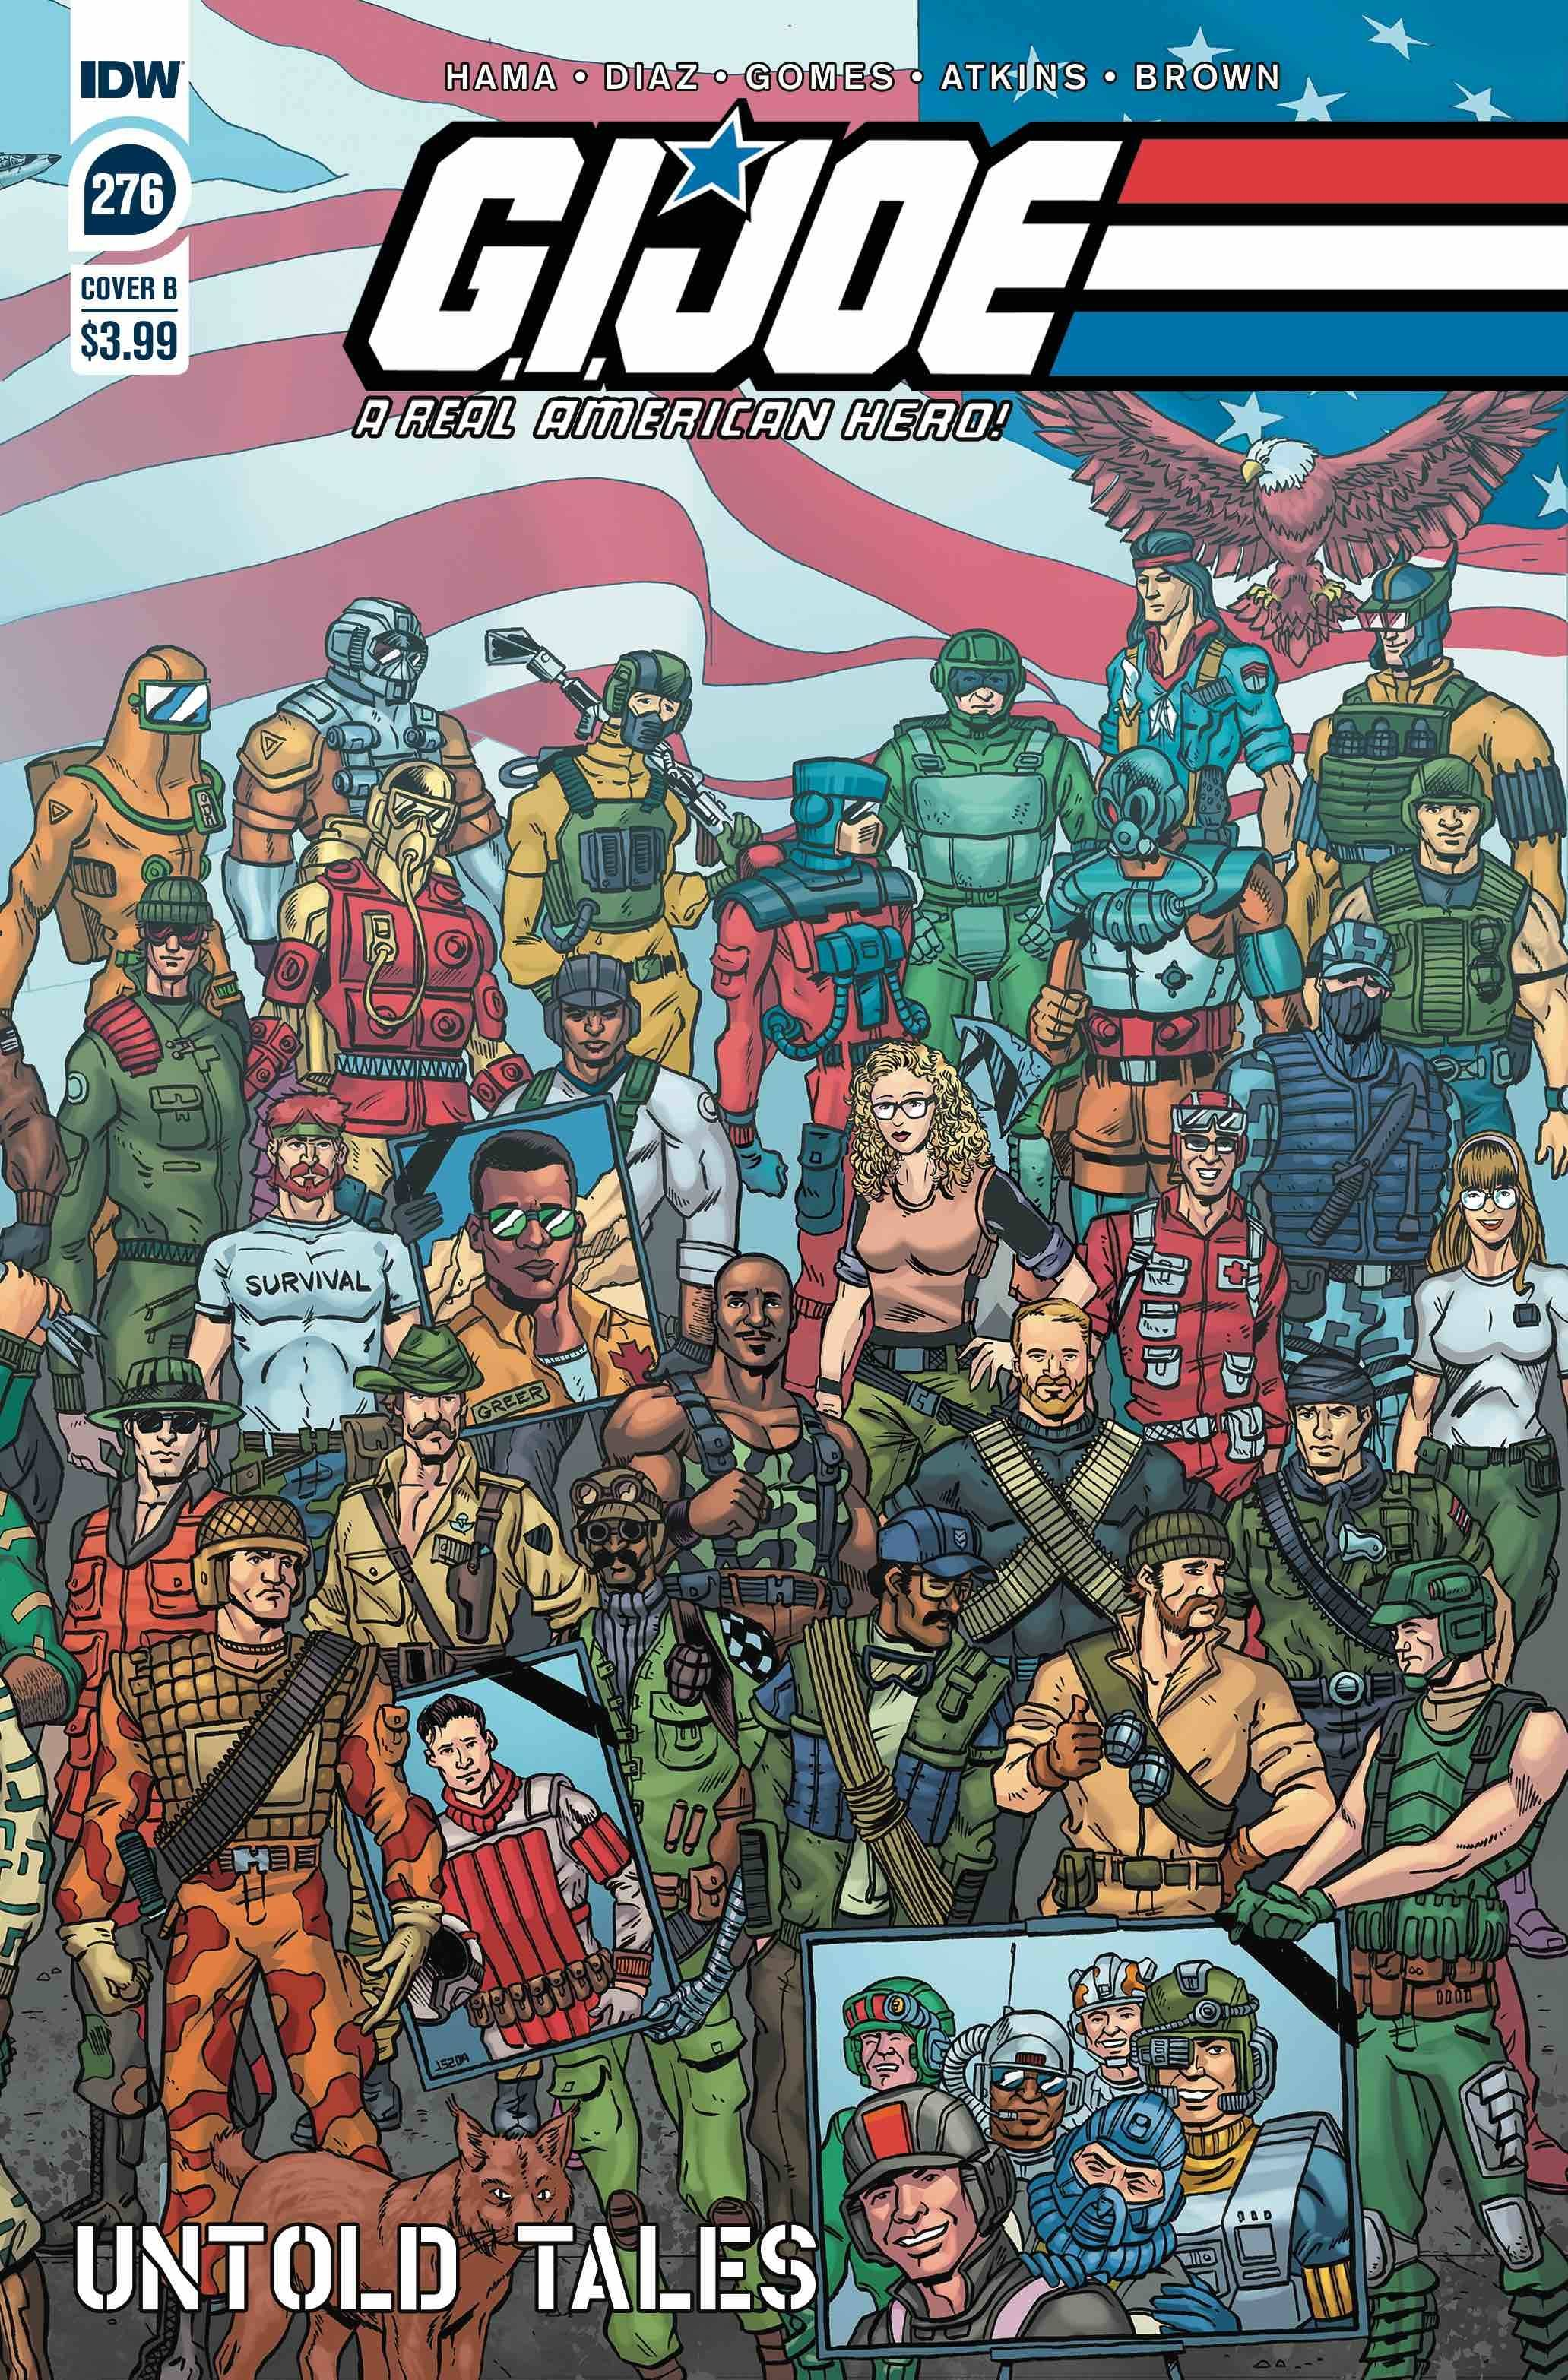 GI JOE A REAL AMERICAN HERO